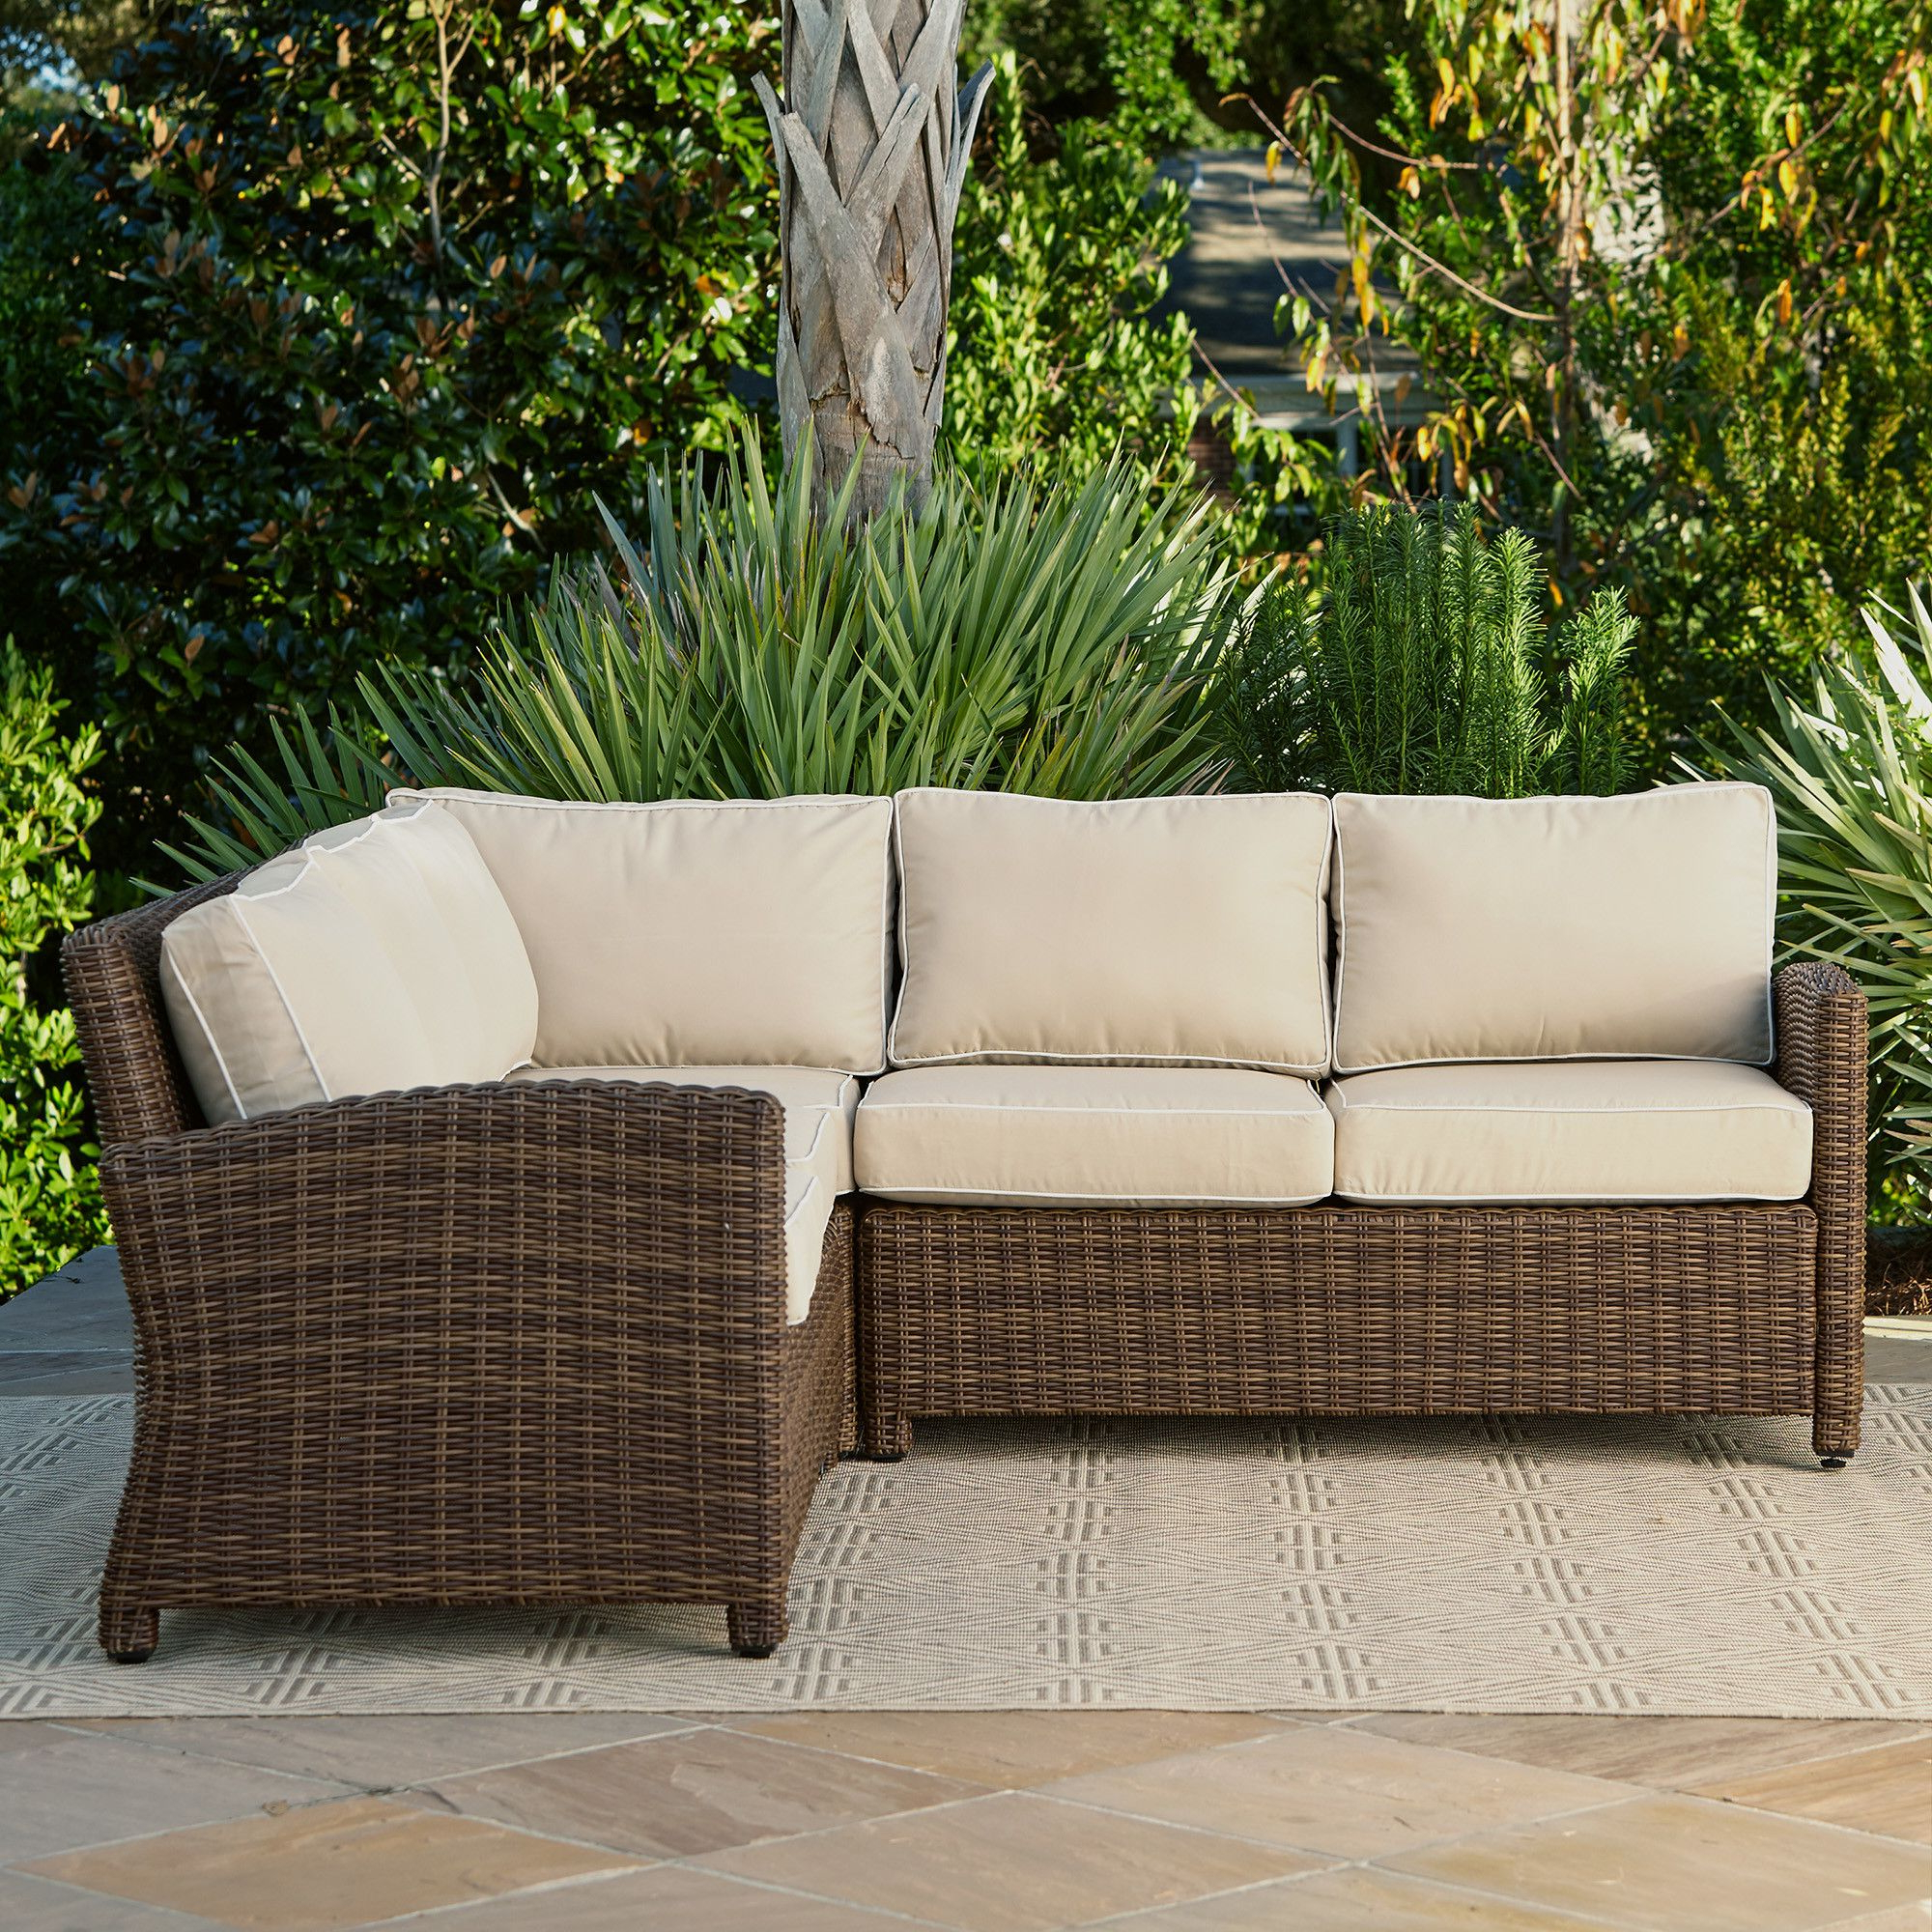 Wayfair For Lawson Wicker Loveseats With Cushions (Gallery 7 of 25)